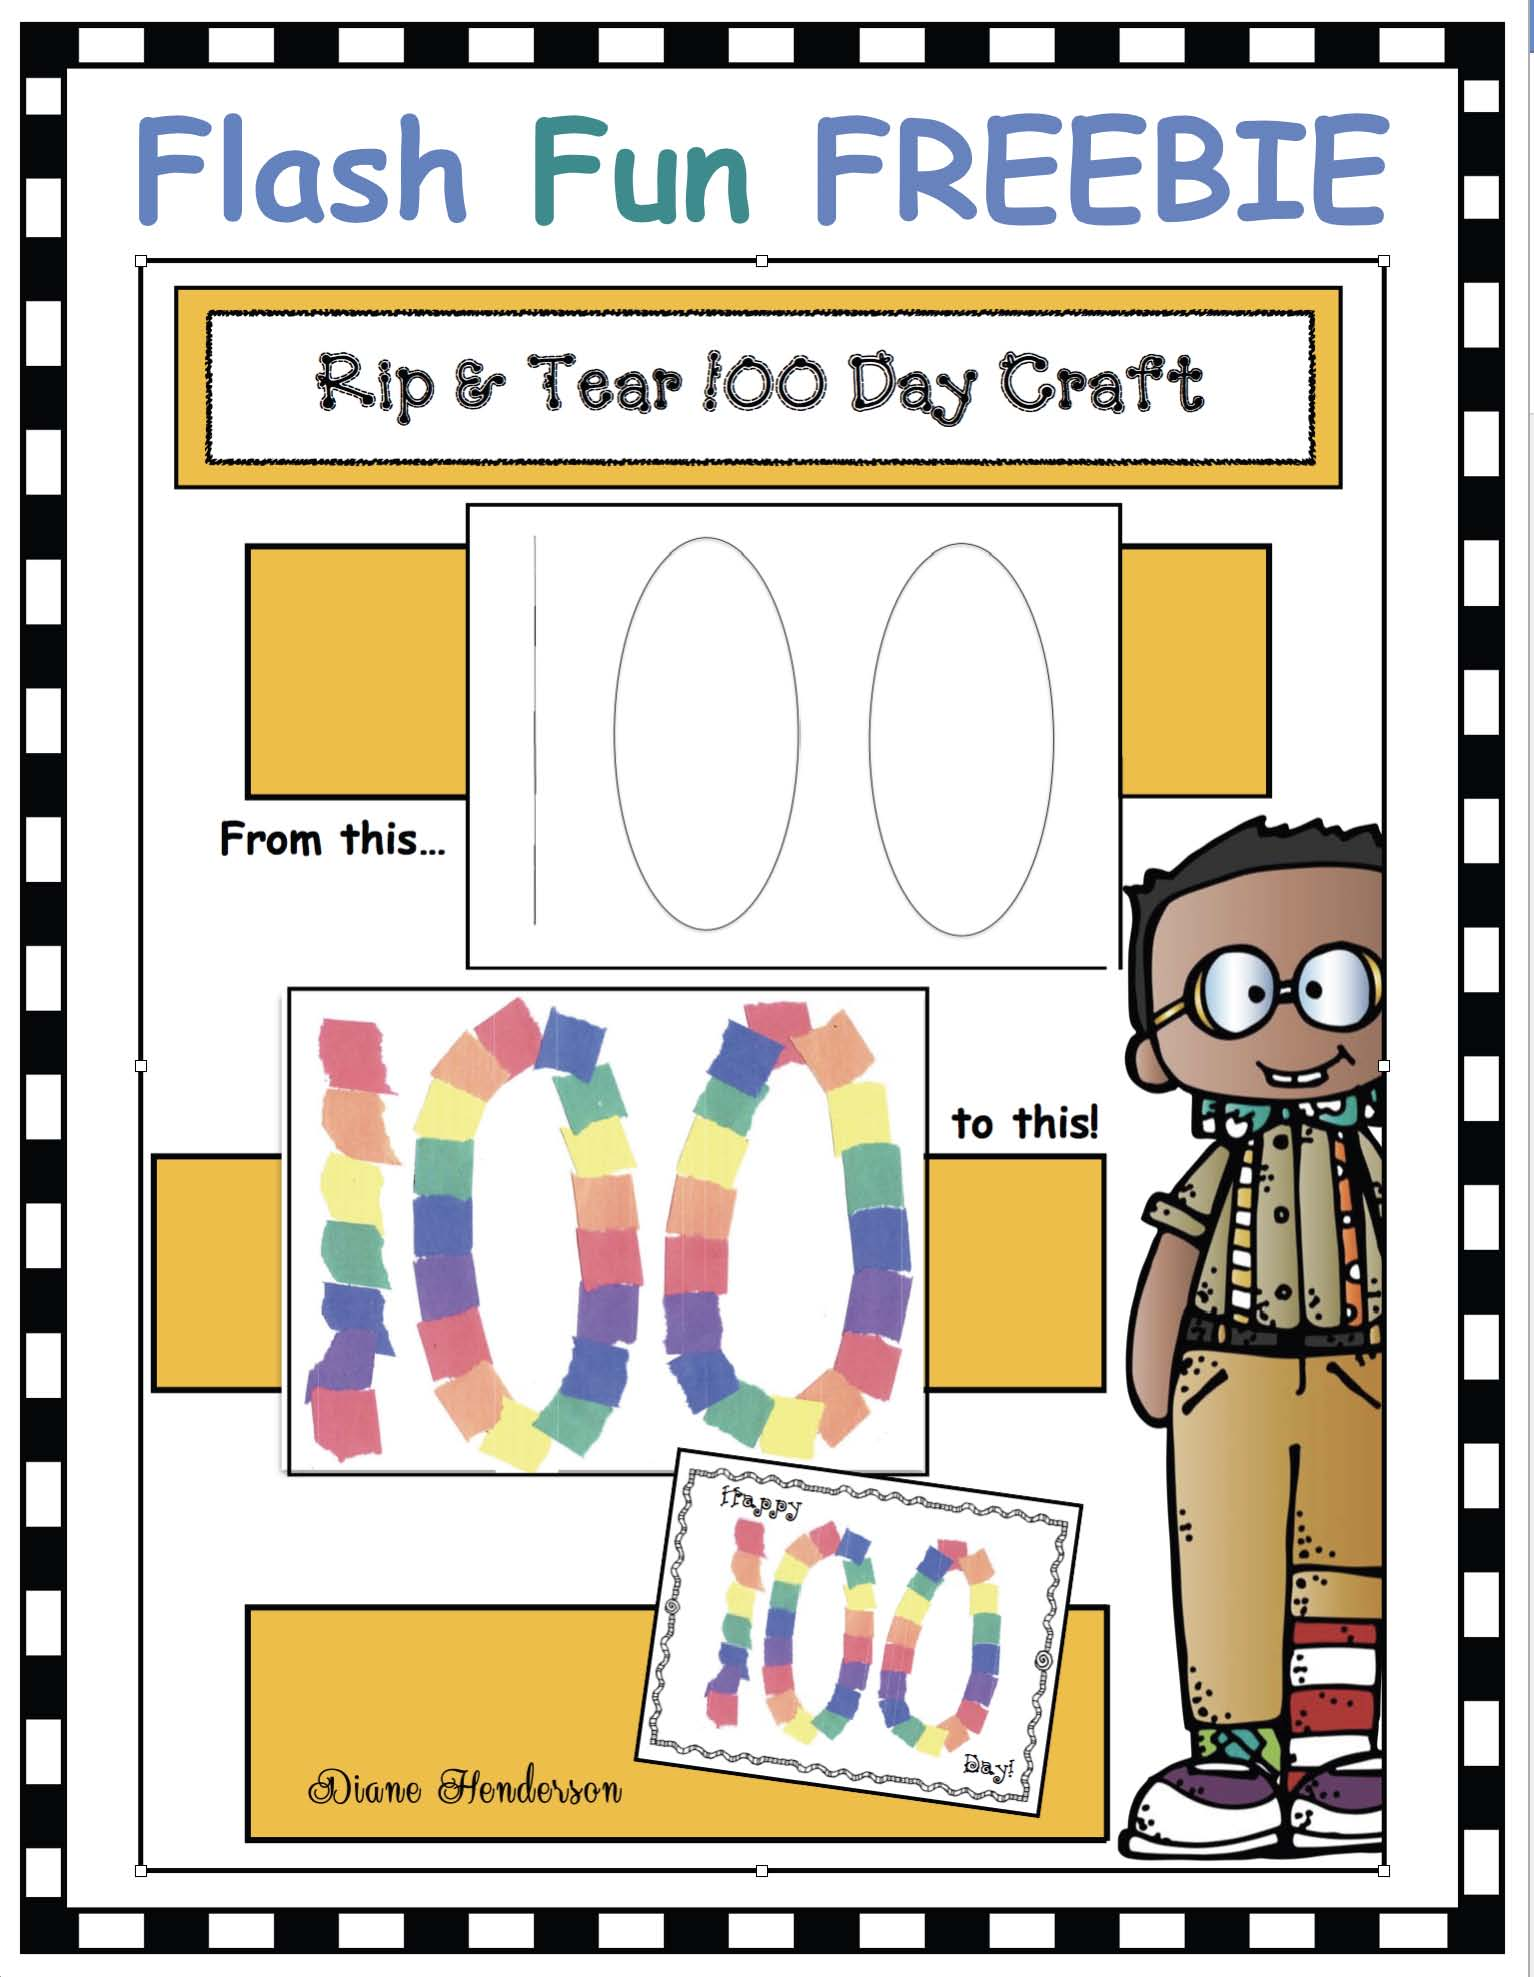 100 Day rip & tear craft for 100 day activities